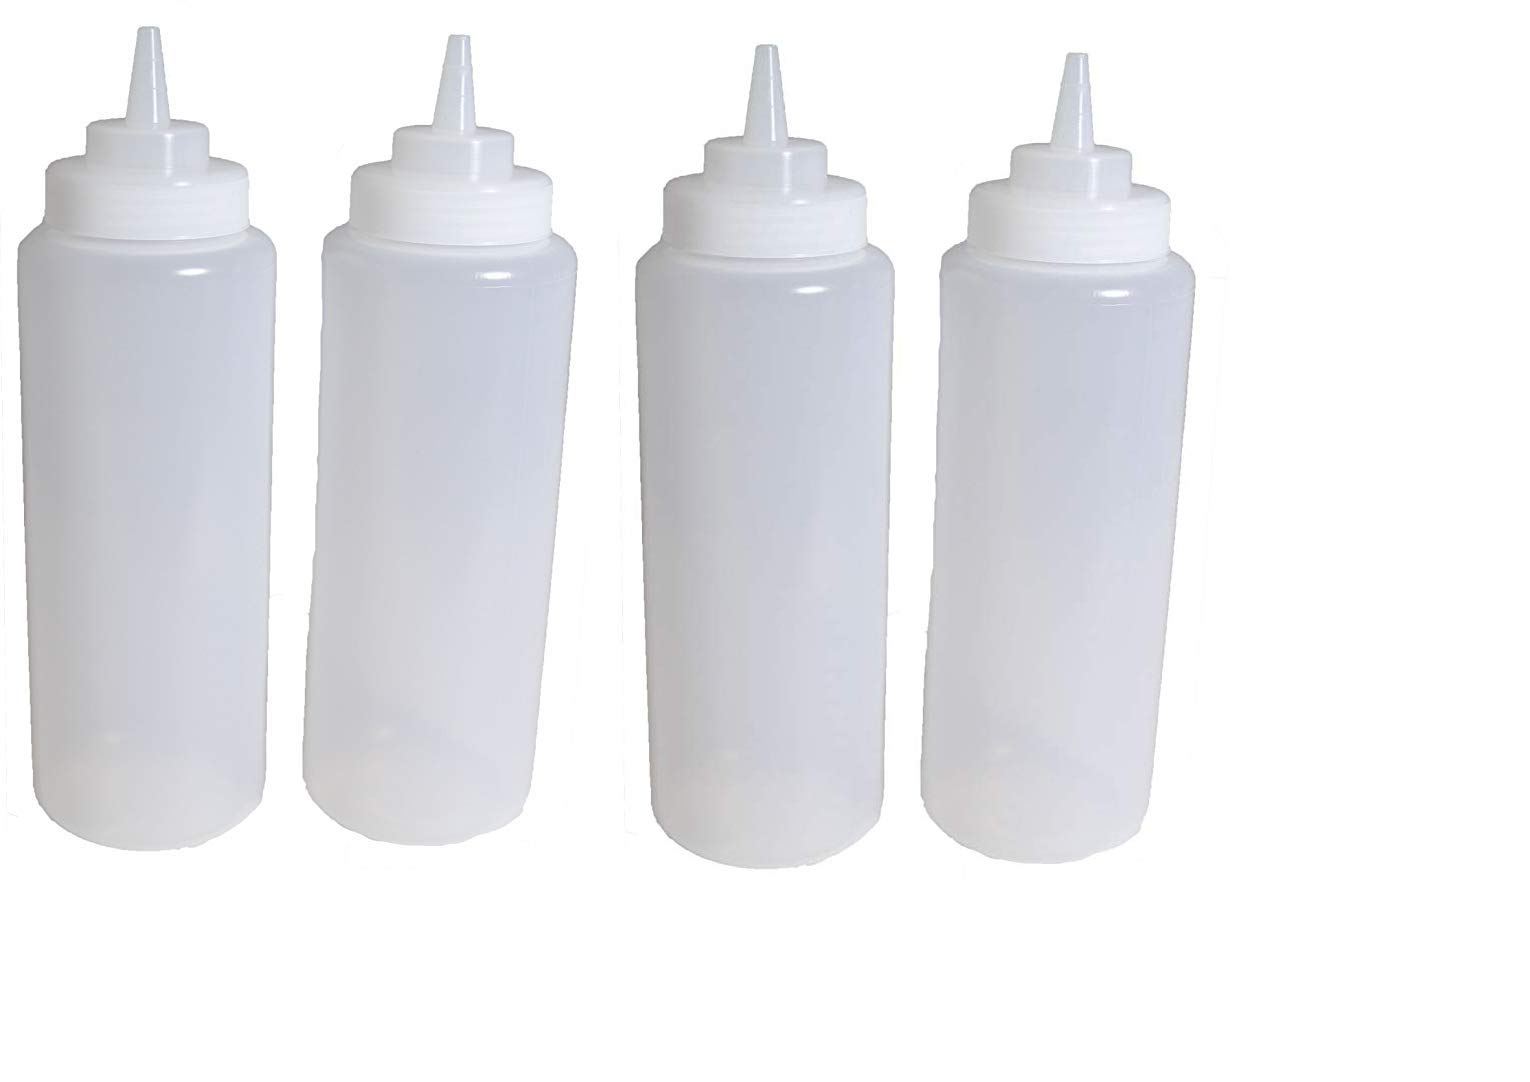 4 Plastic Squeeze Bottles. Clear Condiment Bottles. Ketchup. Mustard, Oil Squeeze Bottle. BBQ Grill Kitchen Cookout Storage Squeeze Bottles. by KITCHEN TOOLS (Image #3)